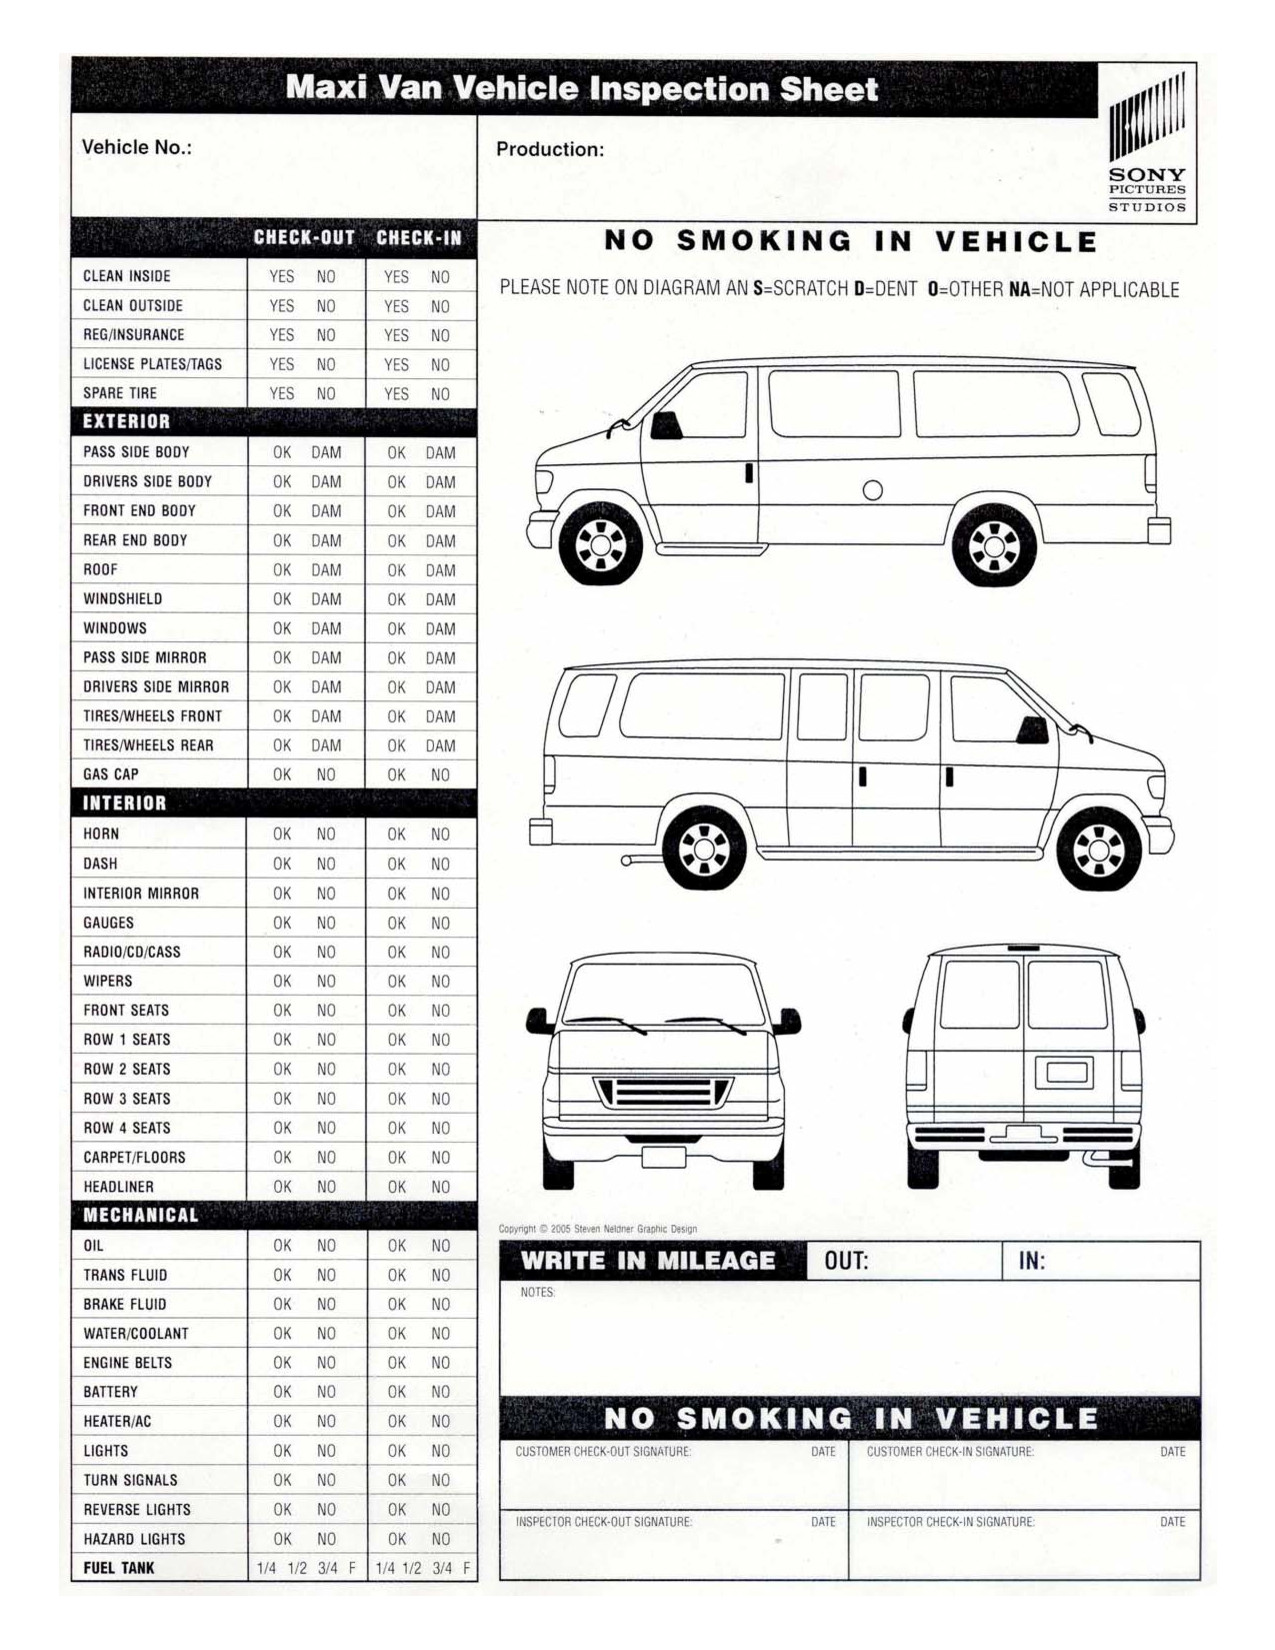 Truck Inspection form Template Vehicle Inspection Sheet Template